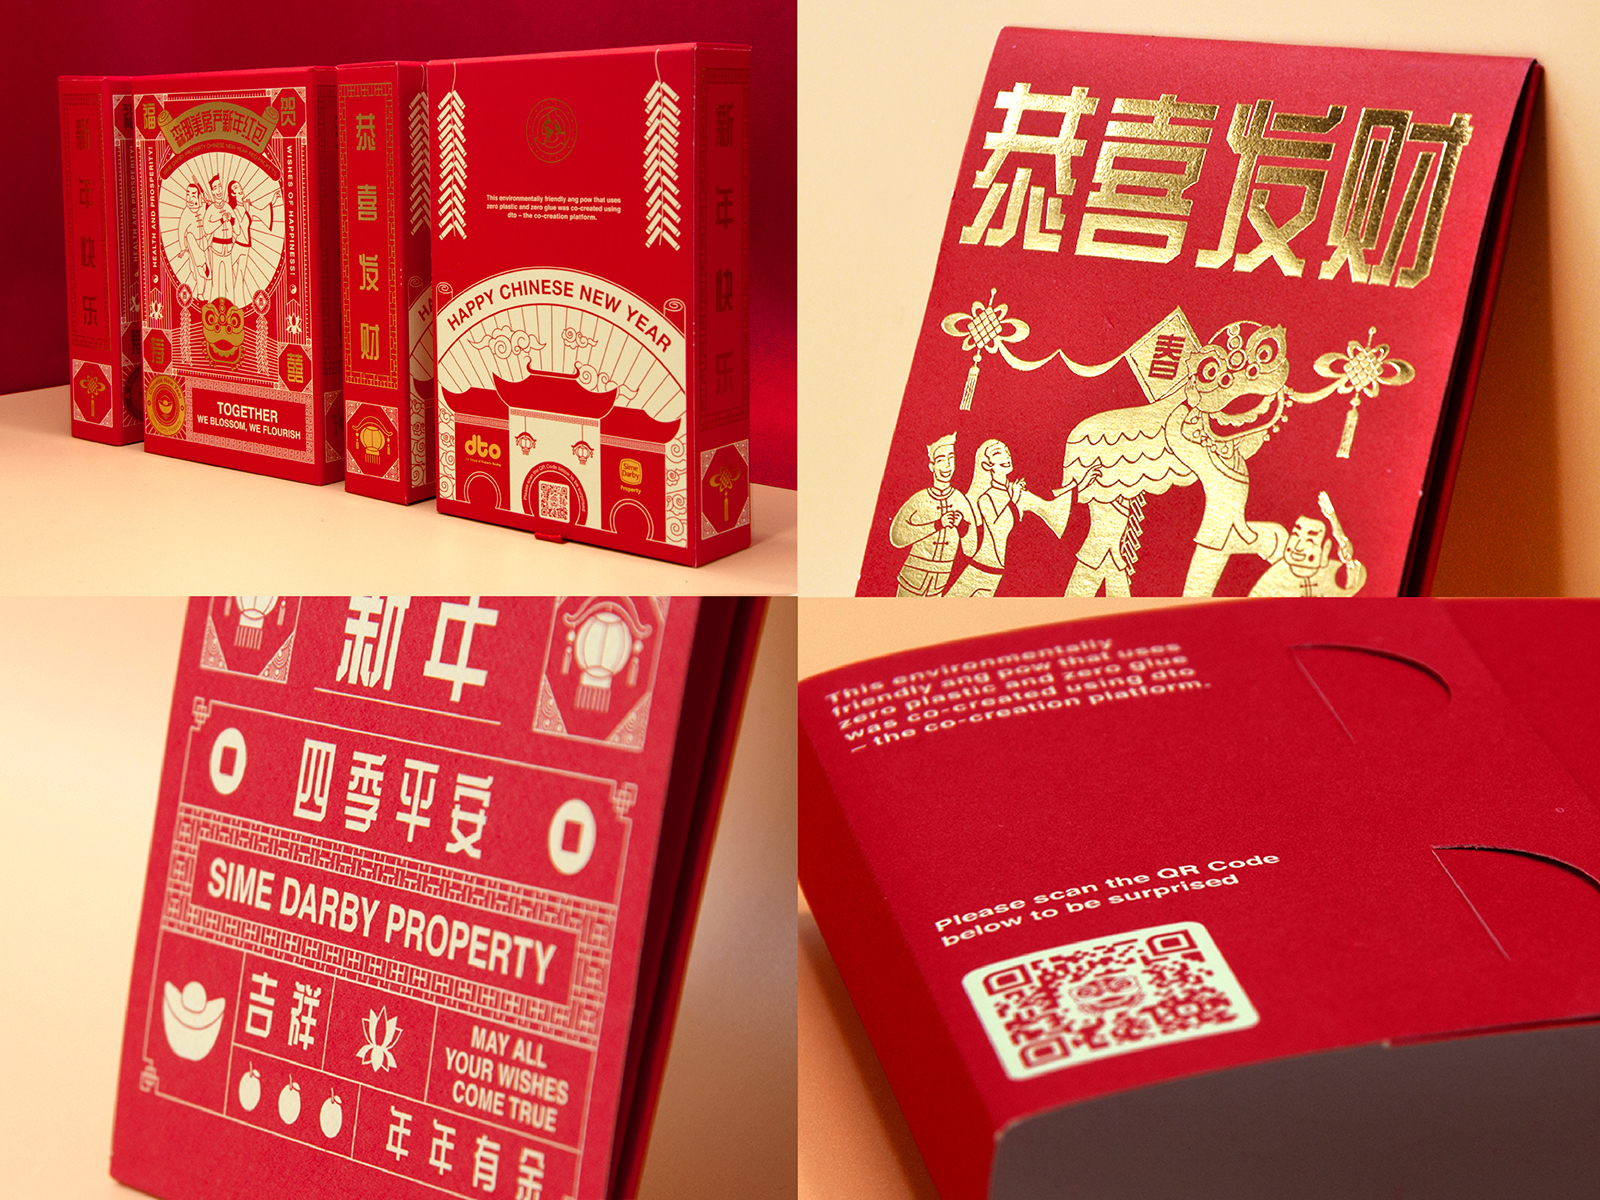 Sime Darby Chinese New Year 2020 red packet or ang pow and packaging design, normal and gold foiling printing, with product photography